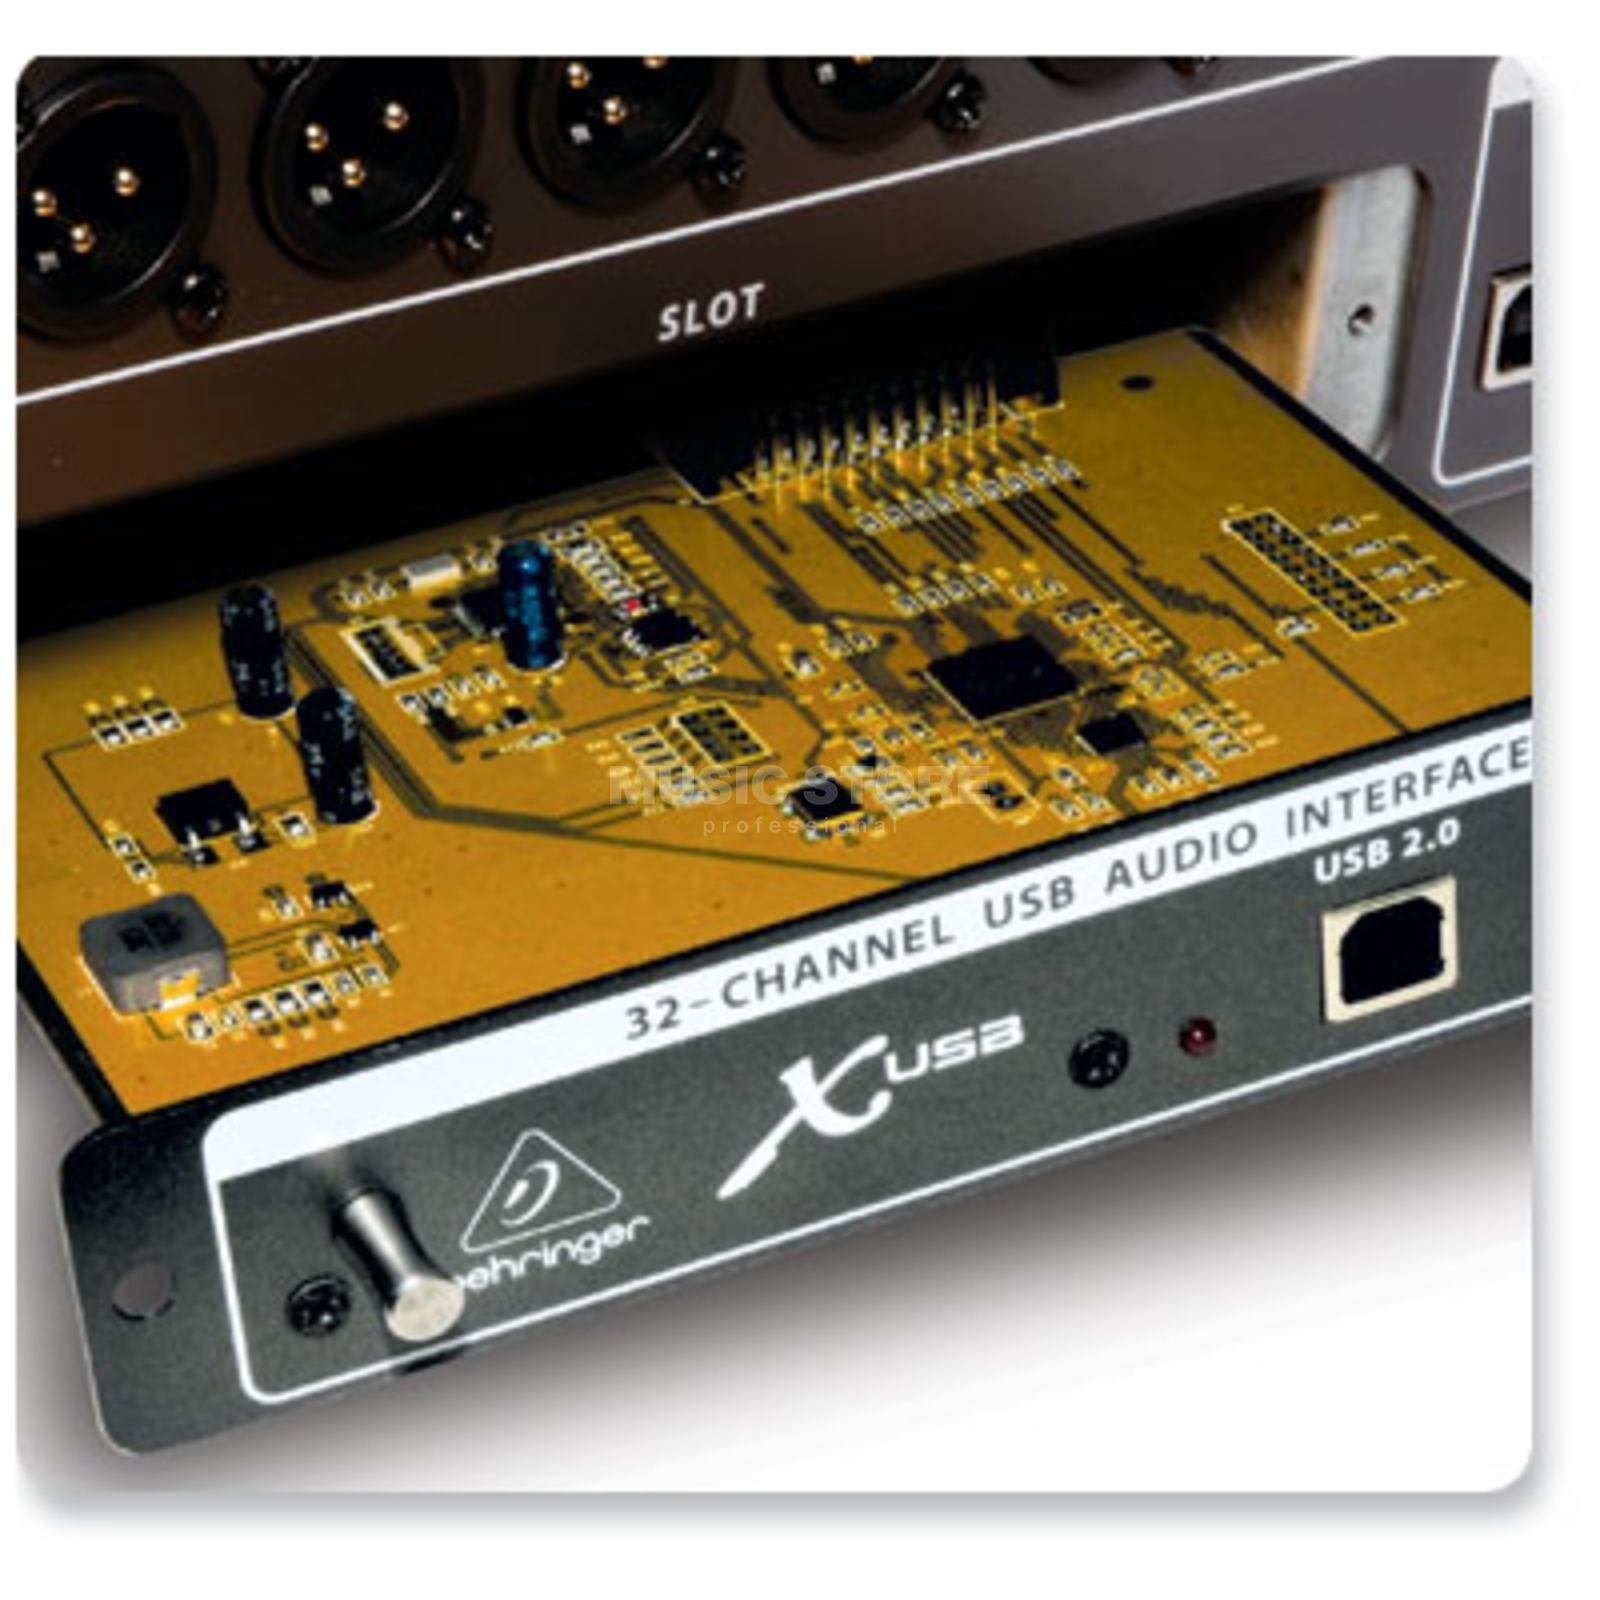 Behringer X-USB Accessory for X-Mixer Product Image